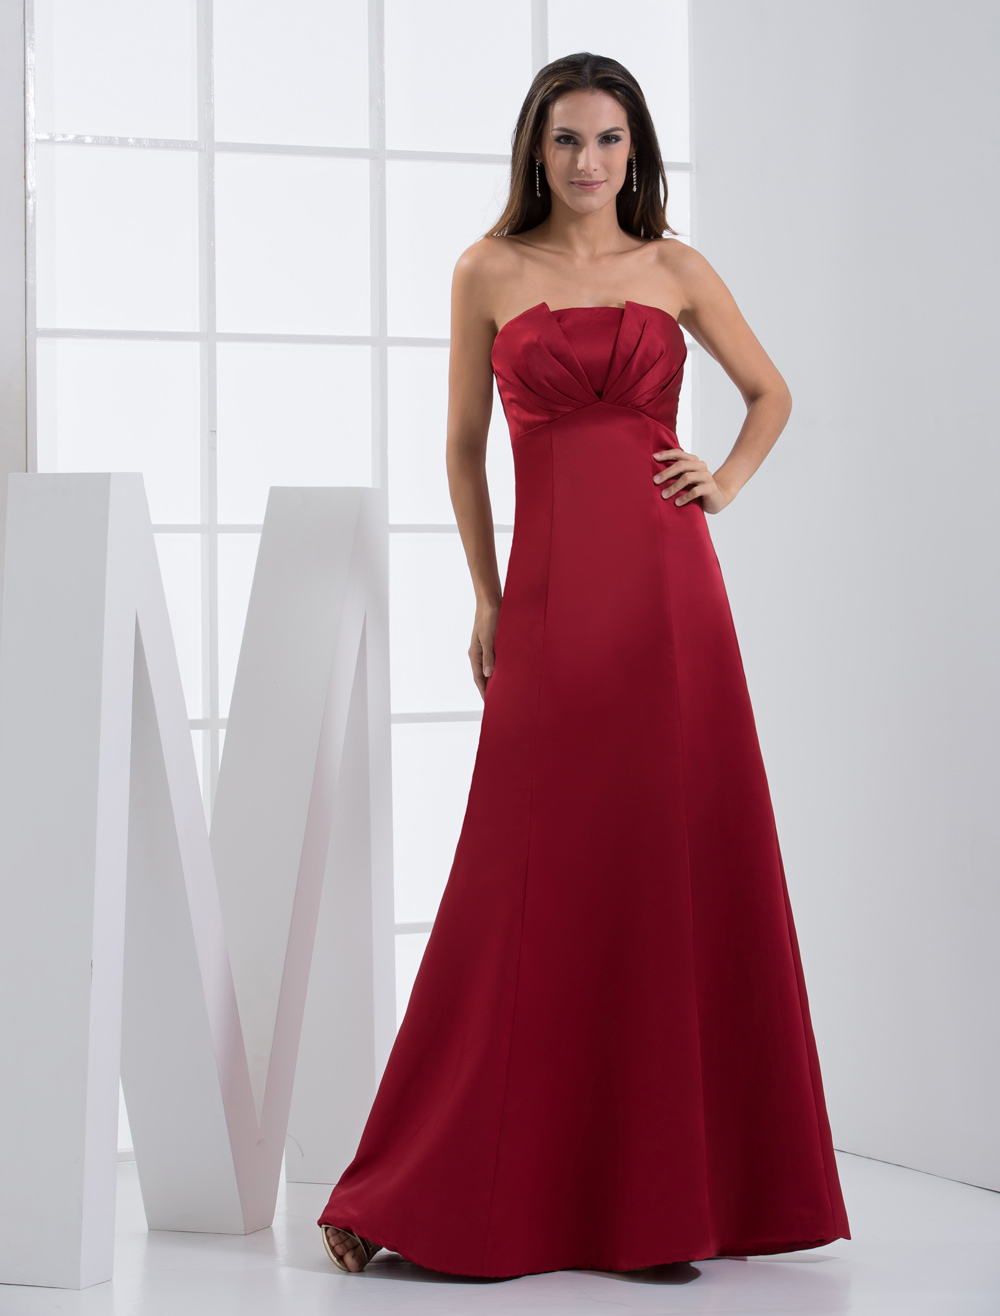 Strapless Bridesmaid Dress Ruby Satin A line Floor Length Prom Dress